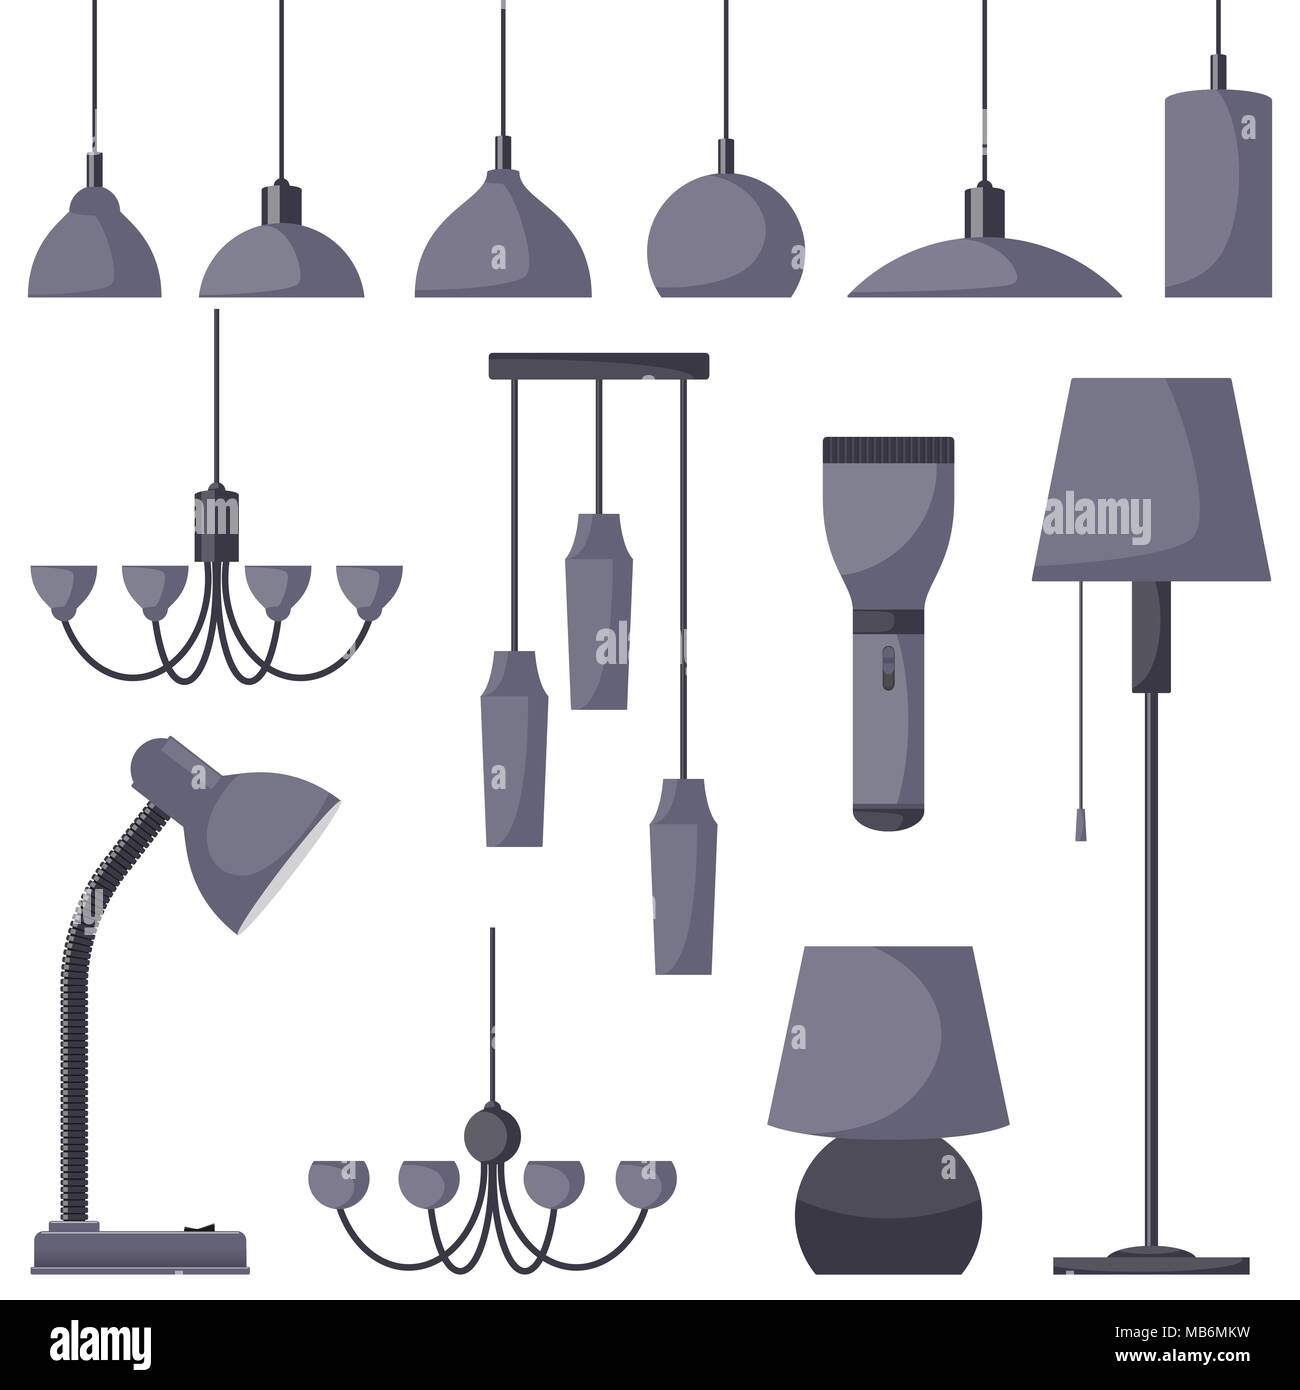 Lamps of different types set chandeliers lamps bulbs table lamp lamps of different types set chandeliers lamps bulbs table lamp flashlight floor lamp elements of modern interior vector illustration in fla aloadofball Choice Image